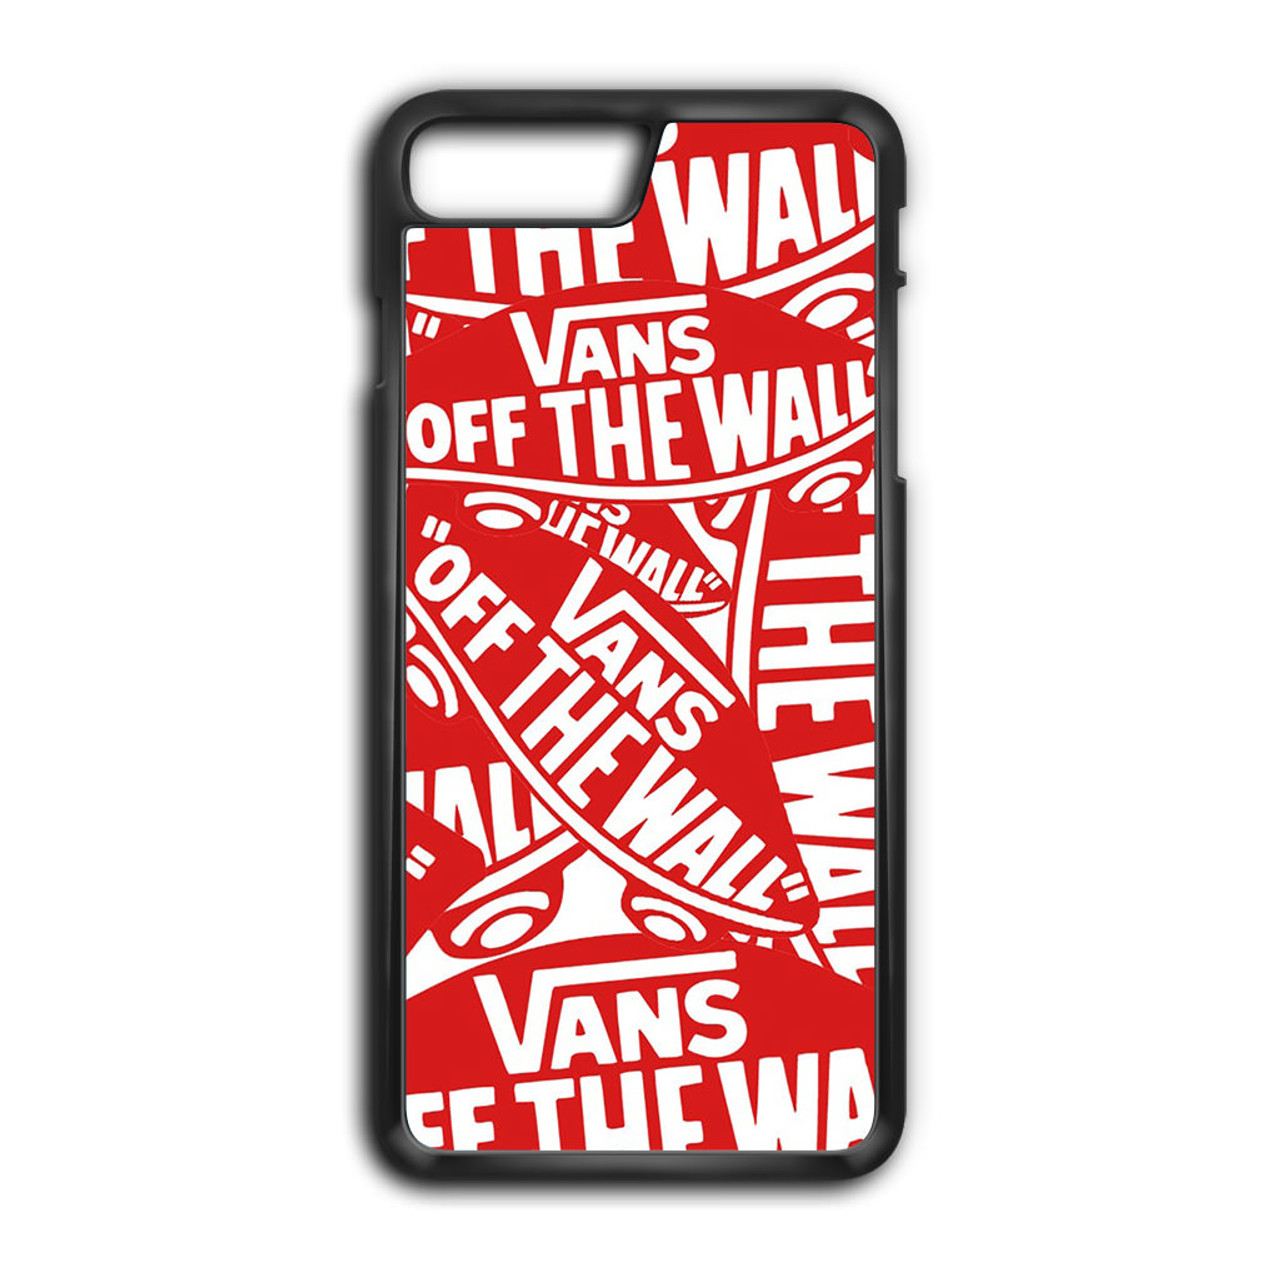 huge selection of 24391 a8127 Vans logo iPhone 7 Plus Case